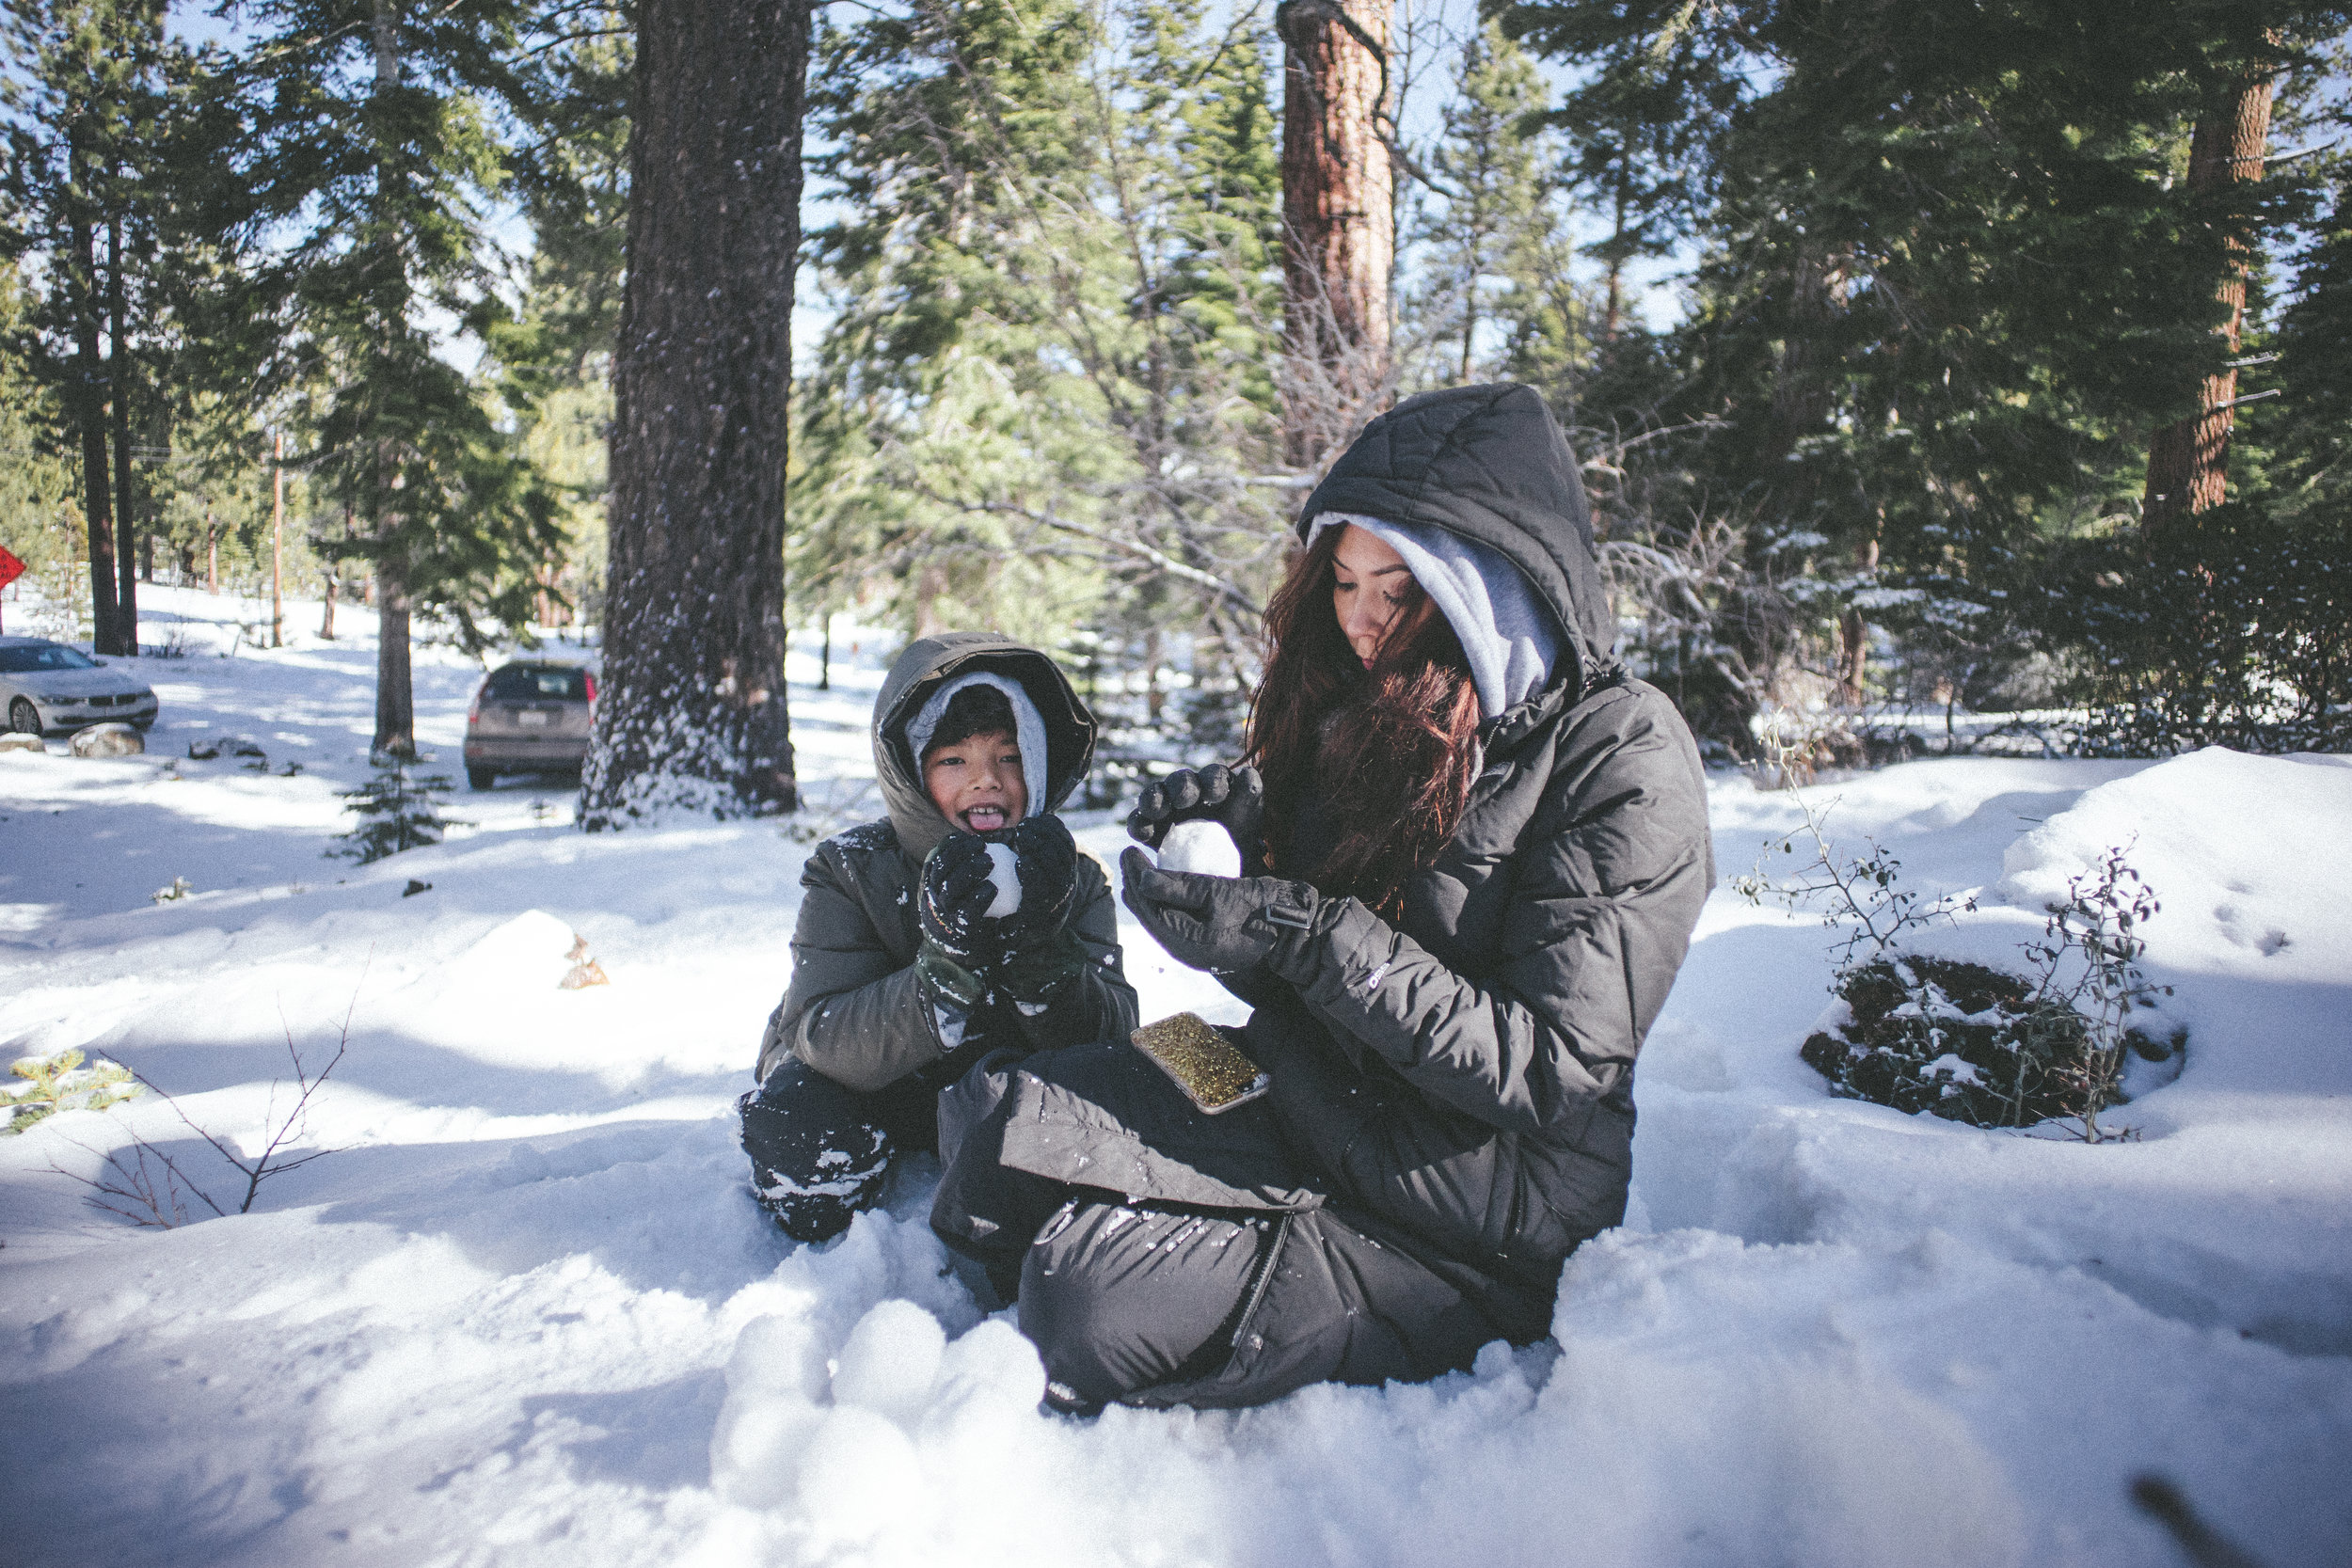 01.23.2016 // i grew up in ohio, so snow was nothing all too special; although i love it. after moving to california, i quickly learned how much i under-appreciated it so being able to visit Lake Tahoe to have a snowball fight with my family was a must.